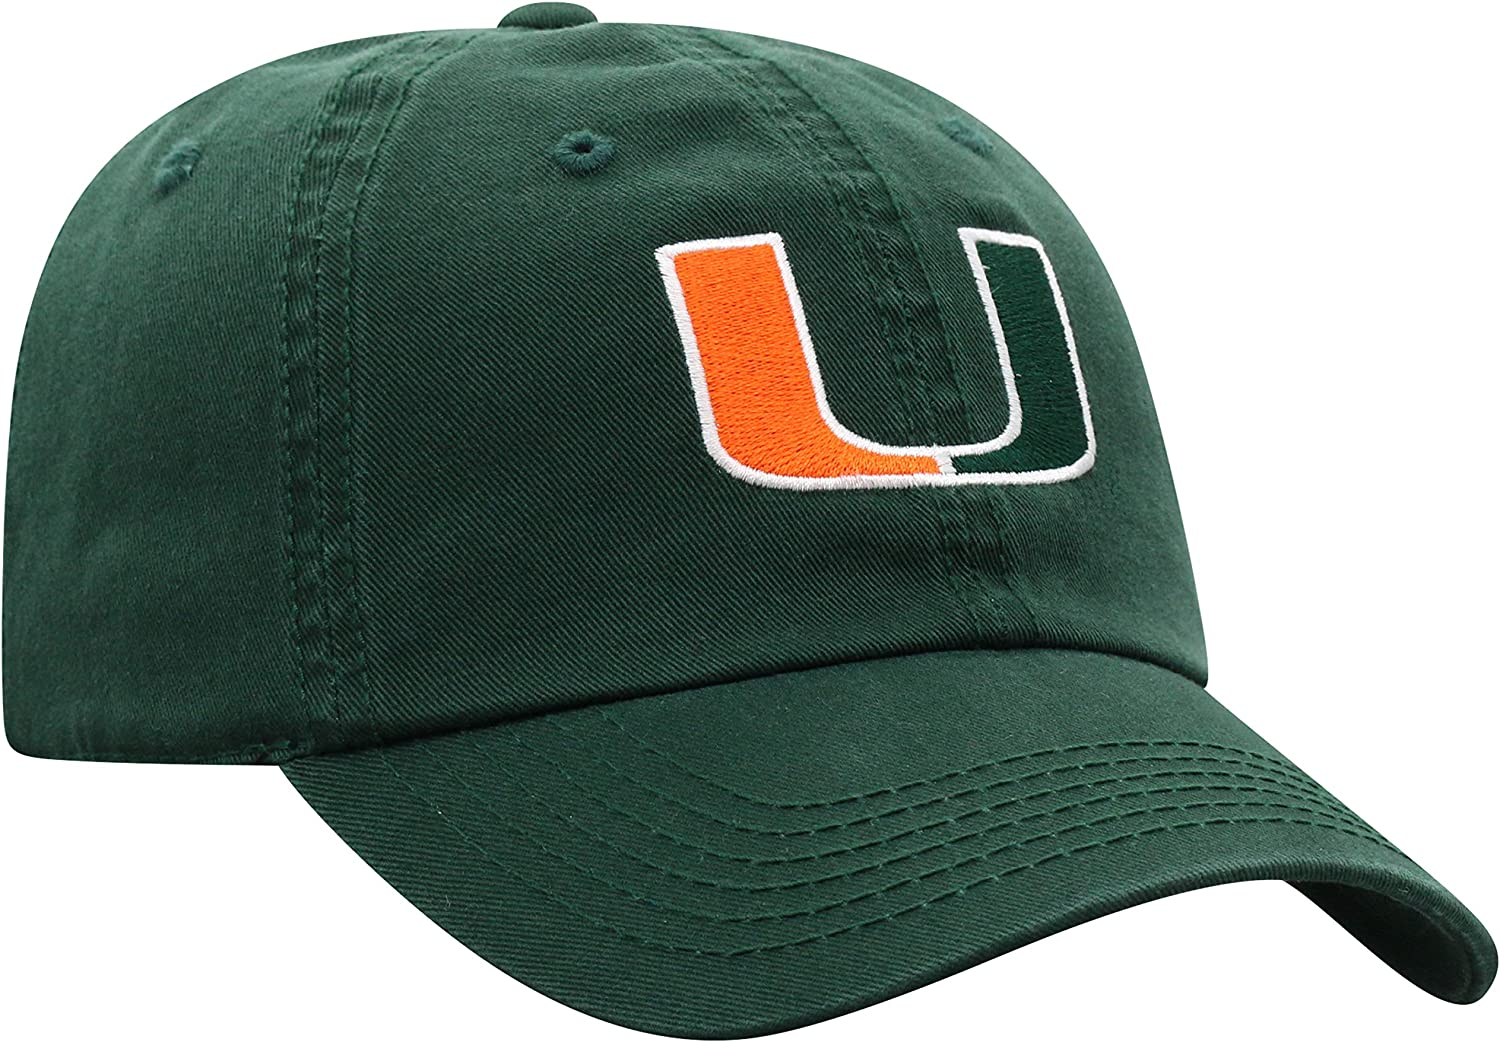 Top of the World NCAA Kids Hat Adjustable Relaxed Fit Team Icon